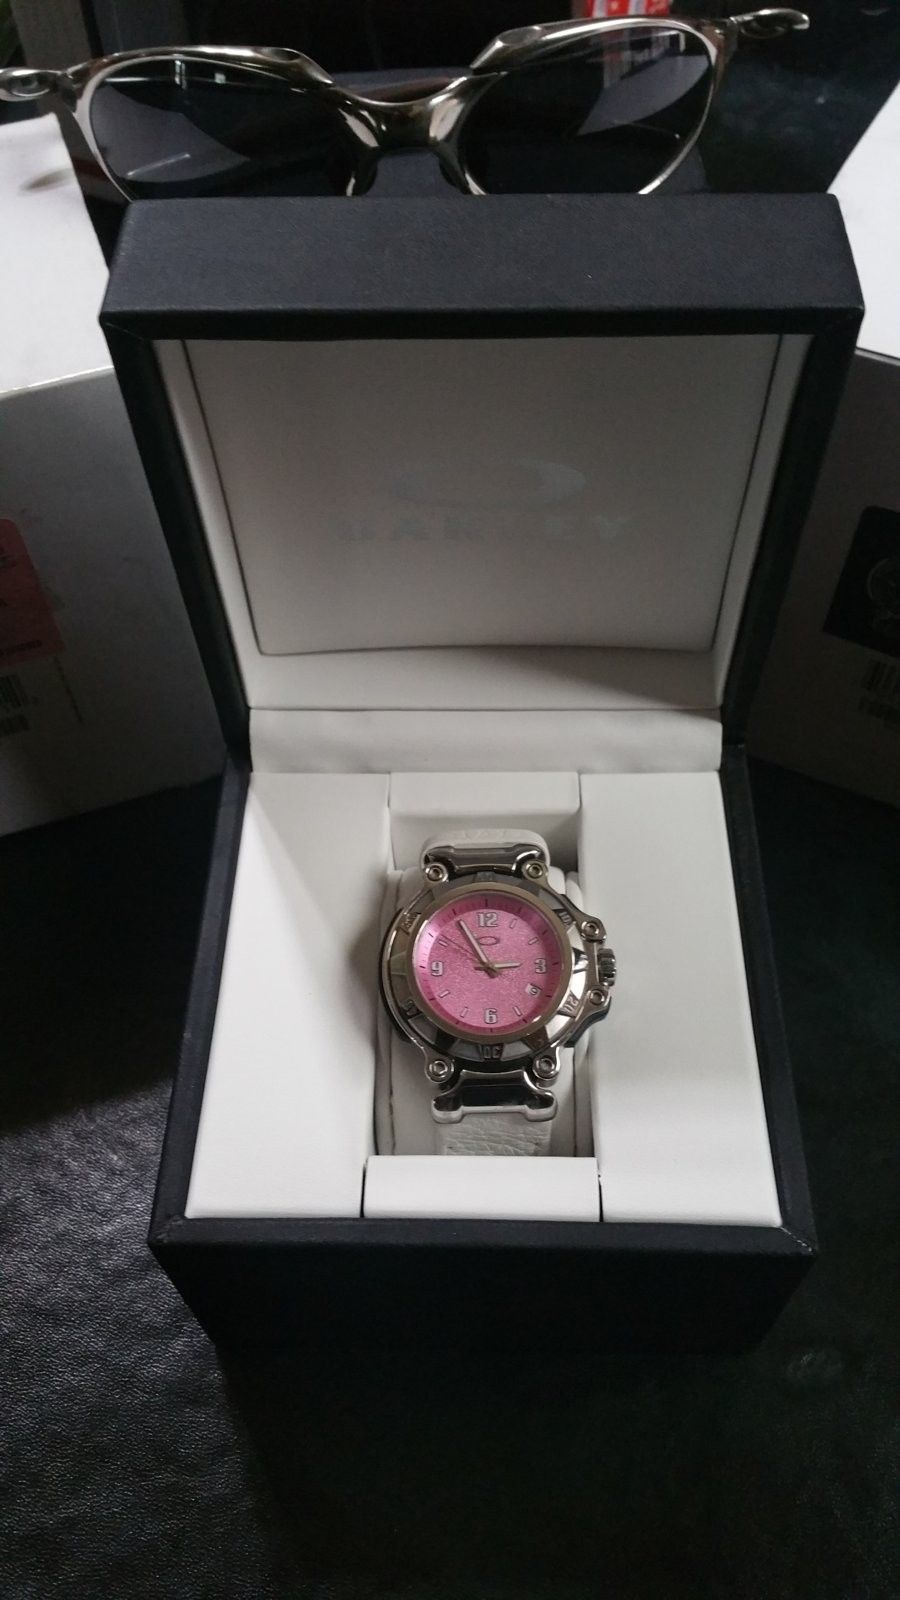 Woman's Crankcase Watch - 20160703_183618.jpg